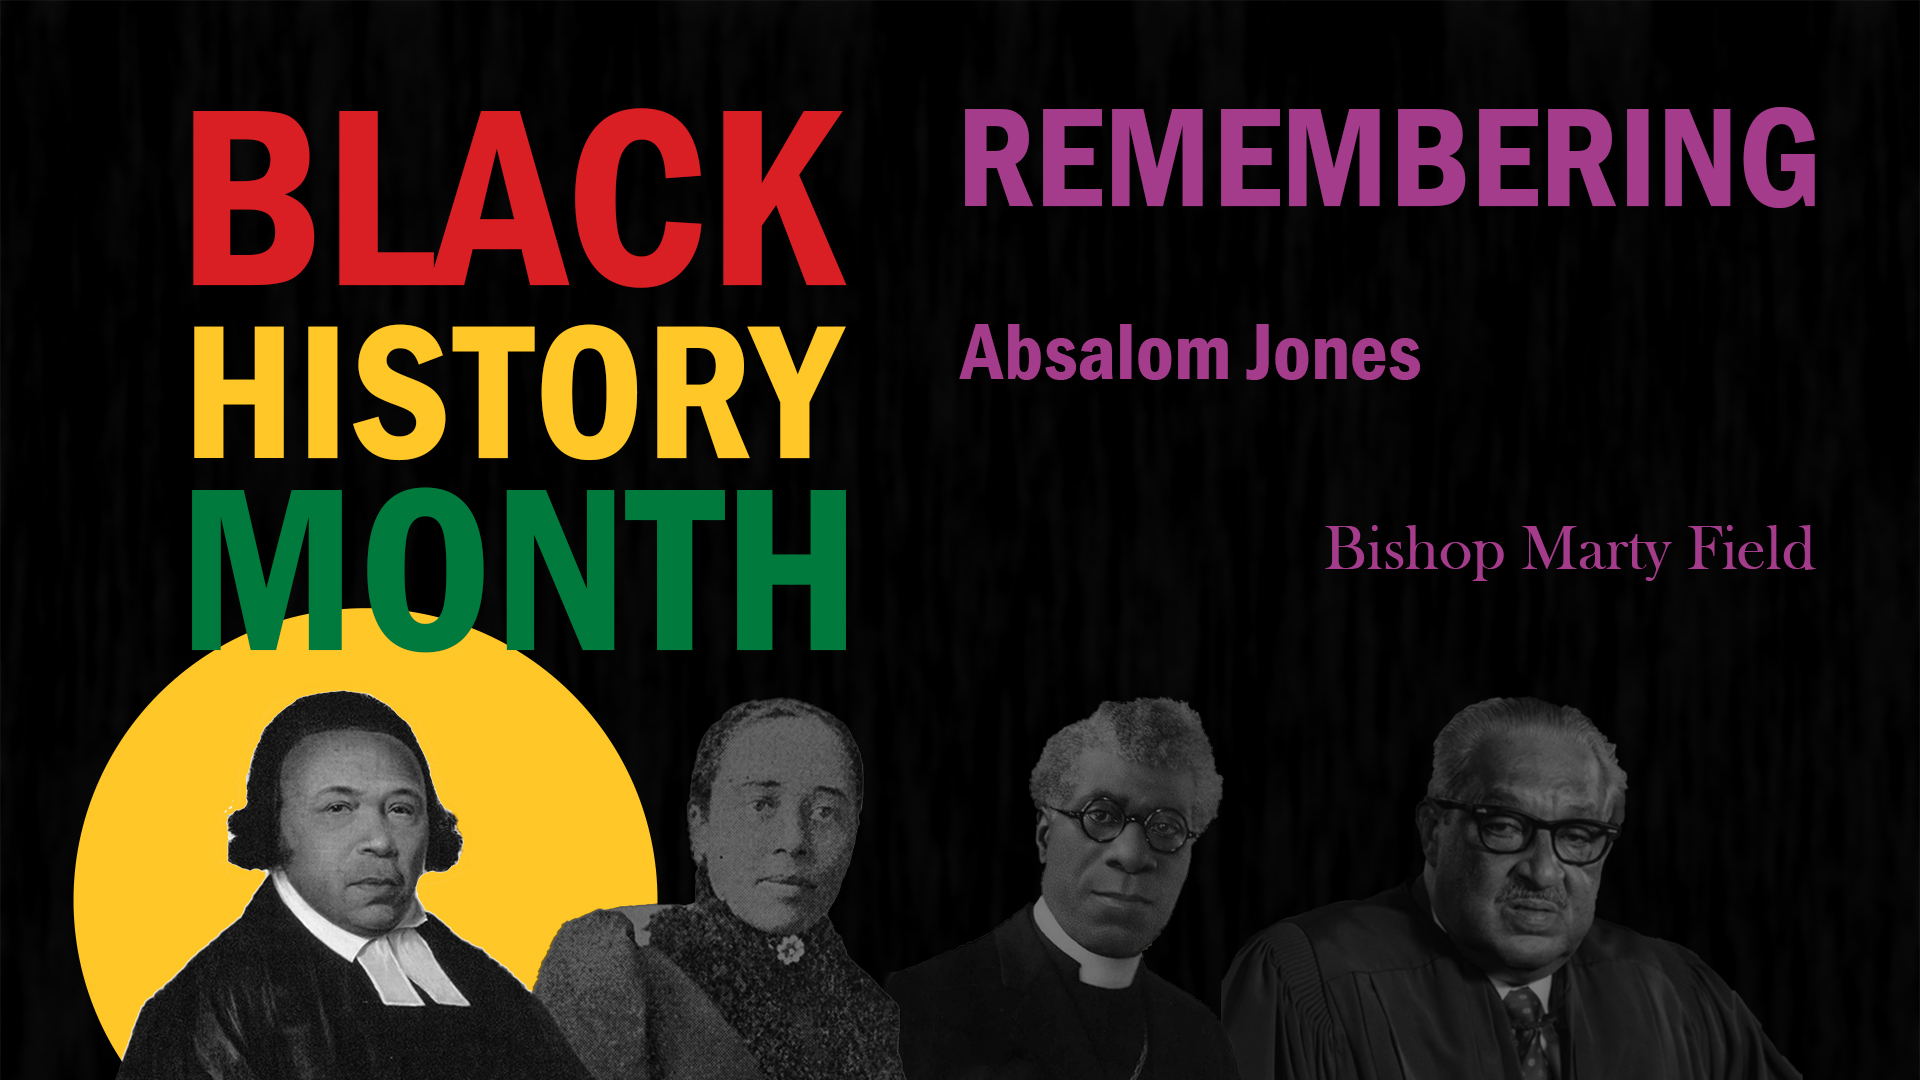 Black History Month. Remembering Absalom Jones